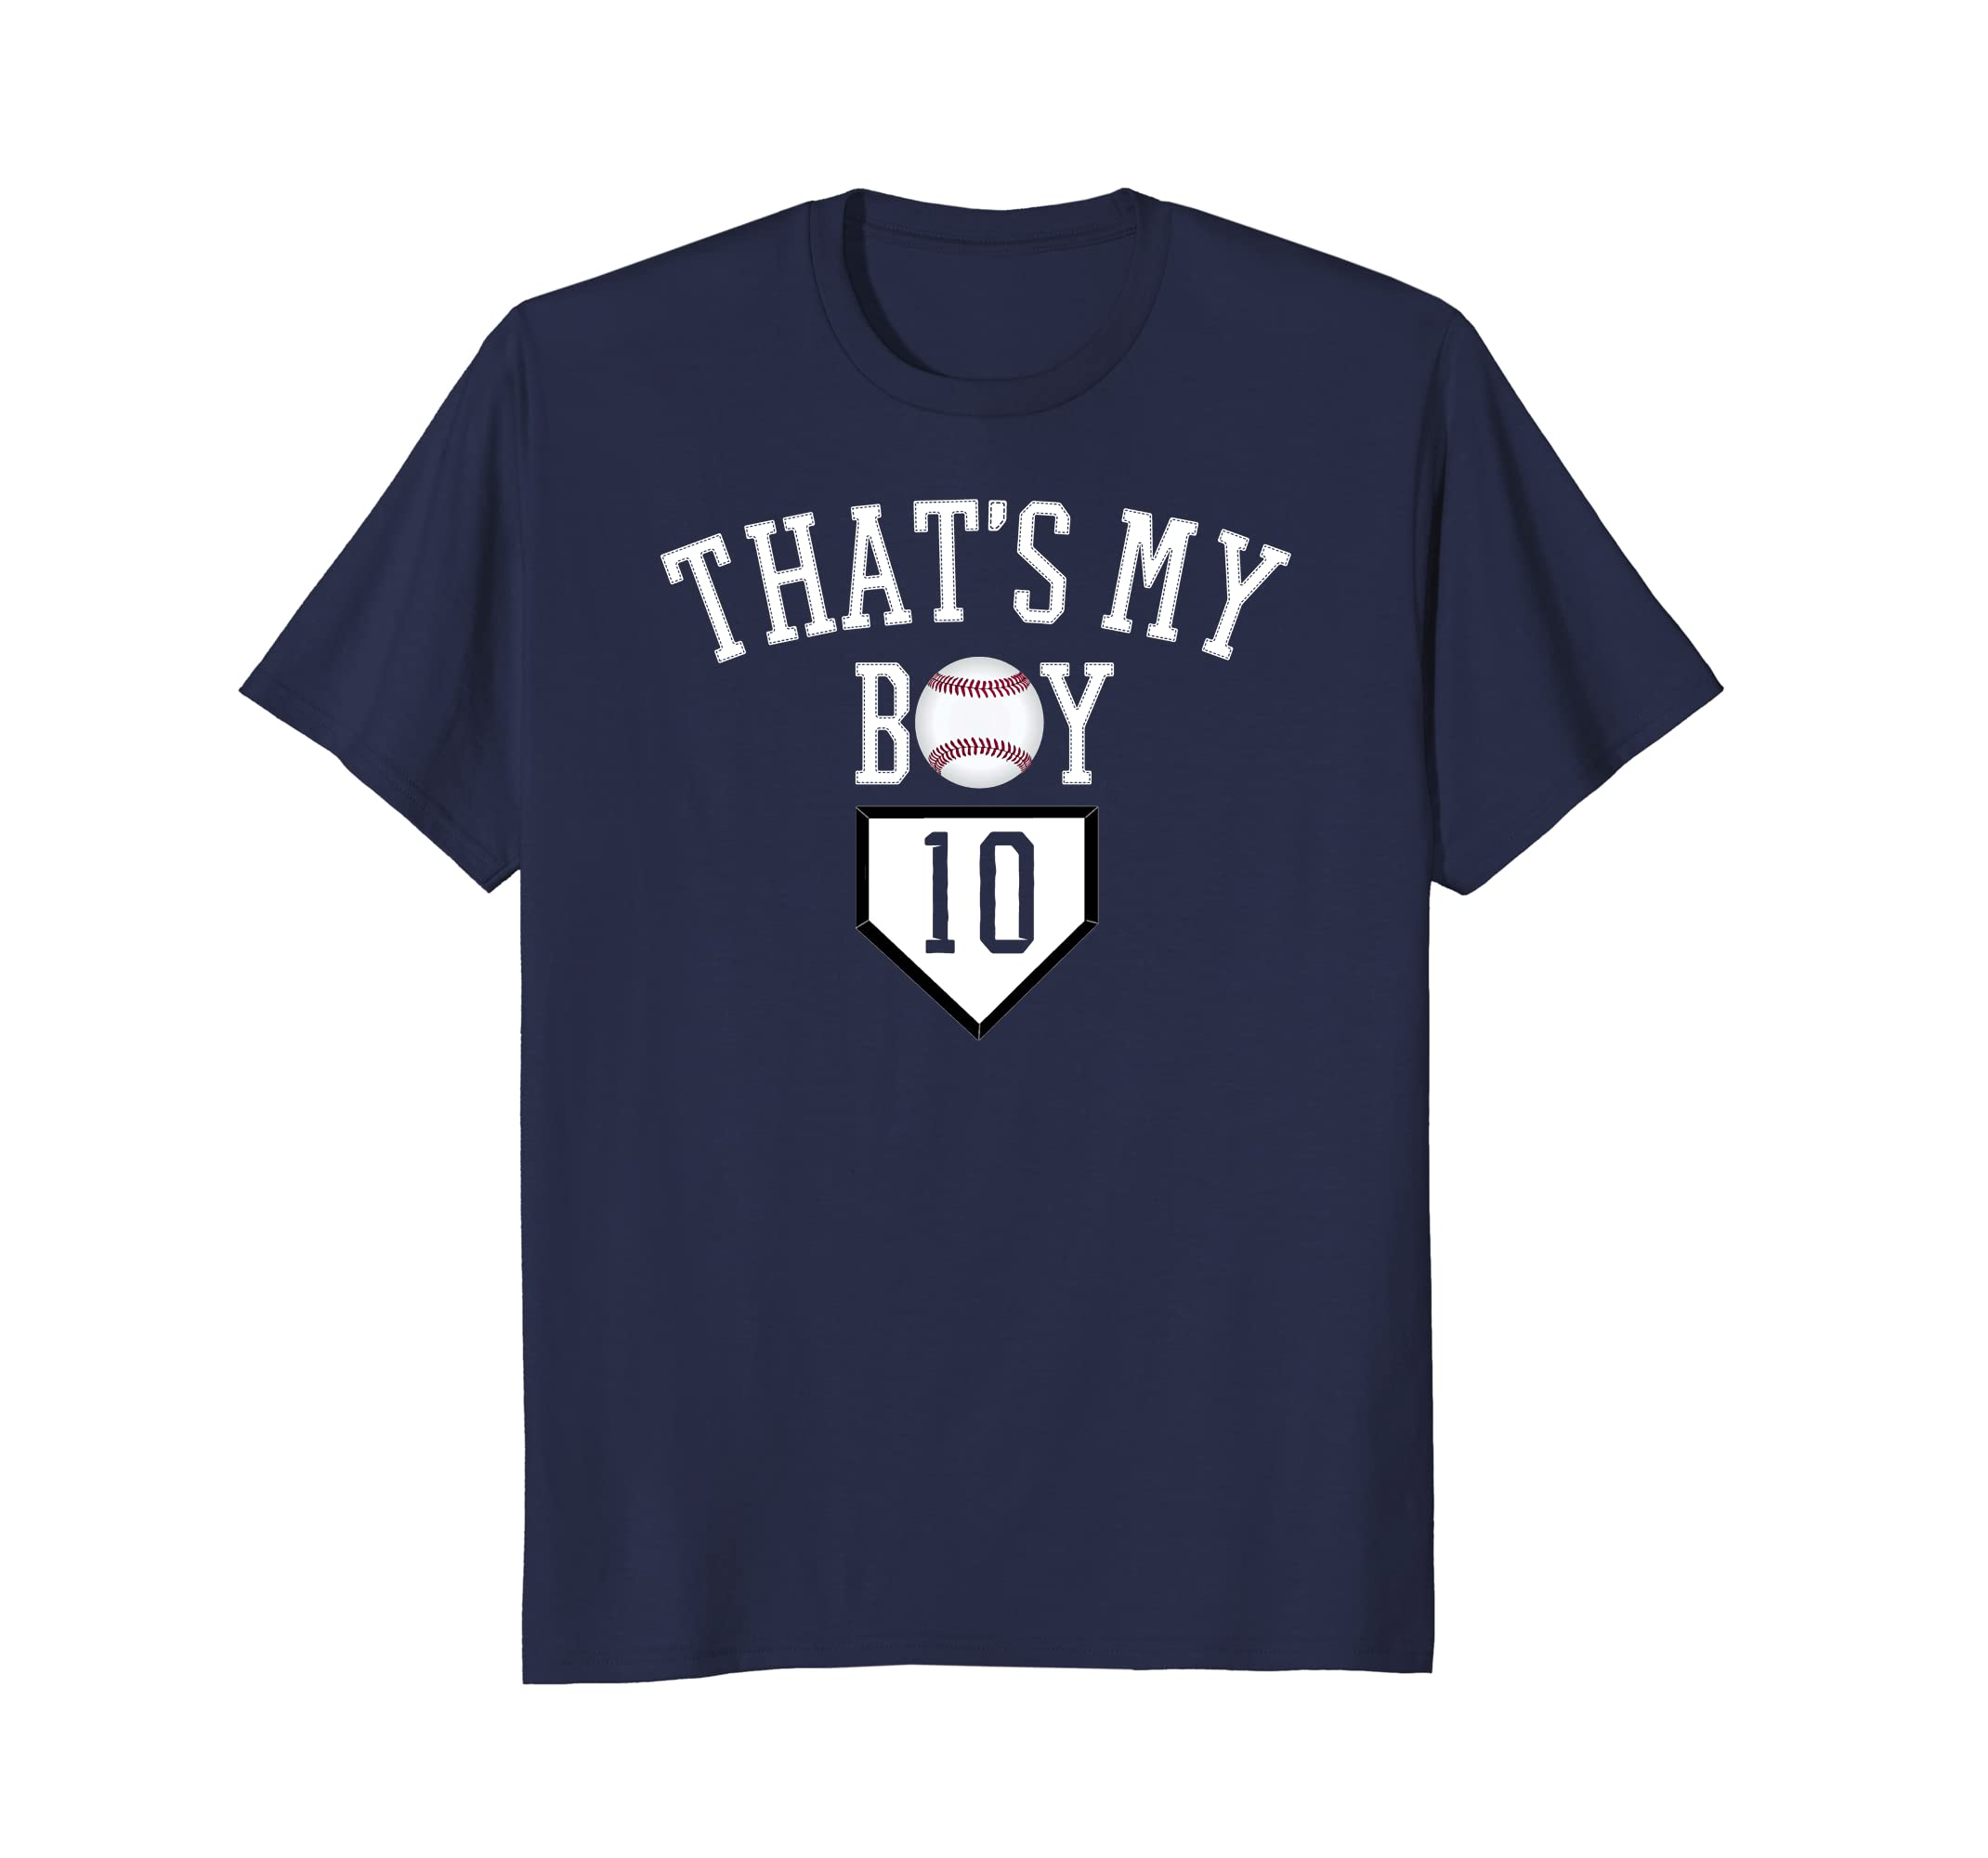 #10 Thats My Boy Baseball Number Shirt-Baseball Mom Dad Tee-TH